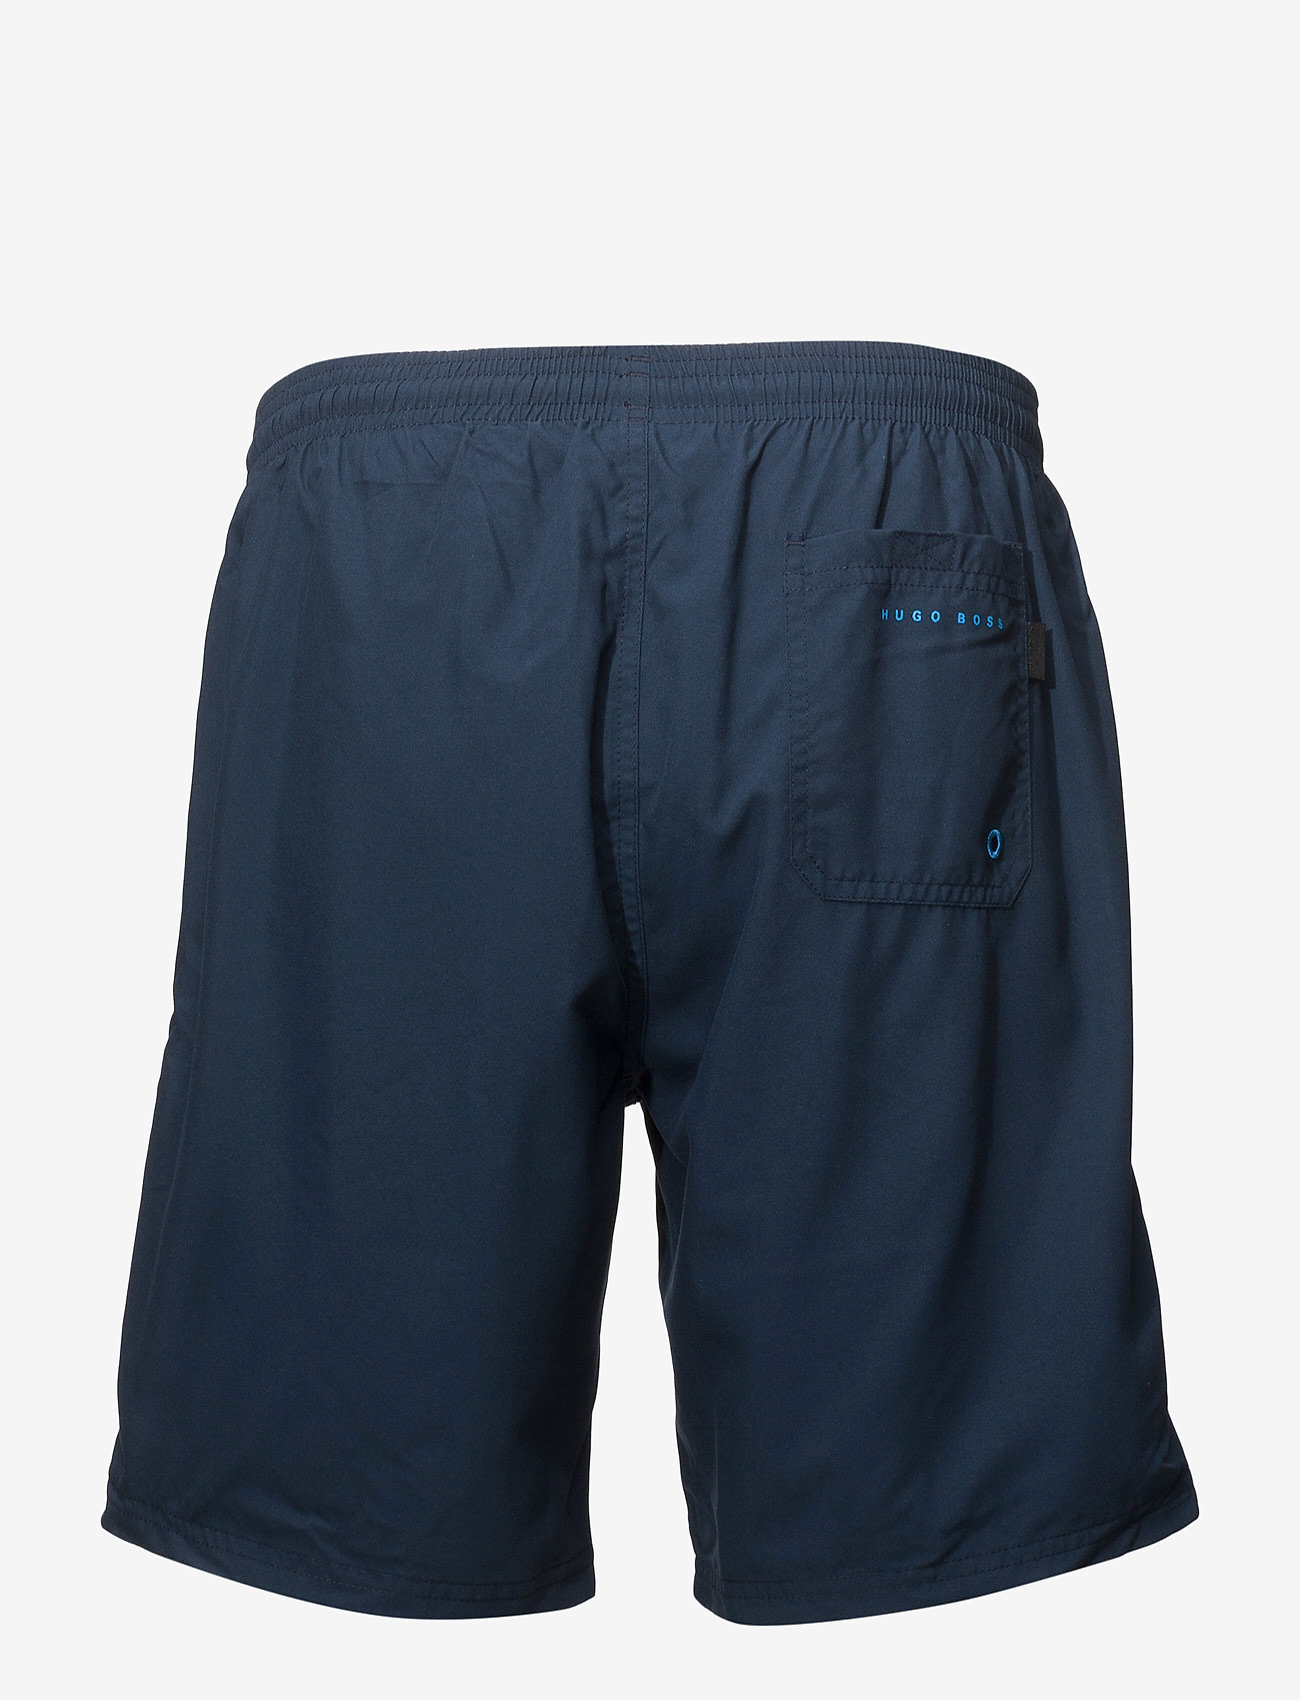 BOSS - Orca - boardshorts - navy - 1